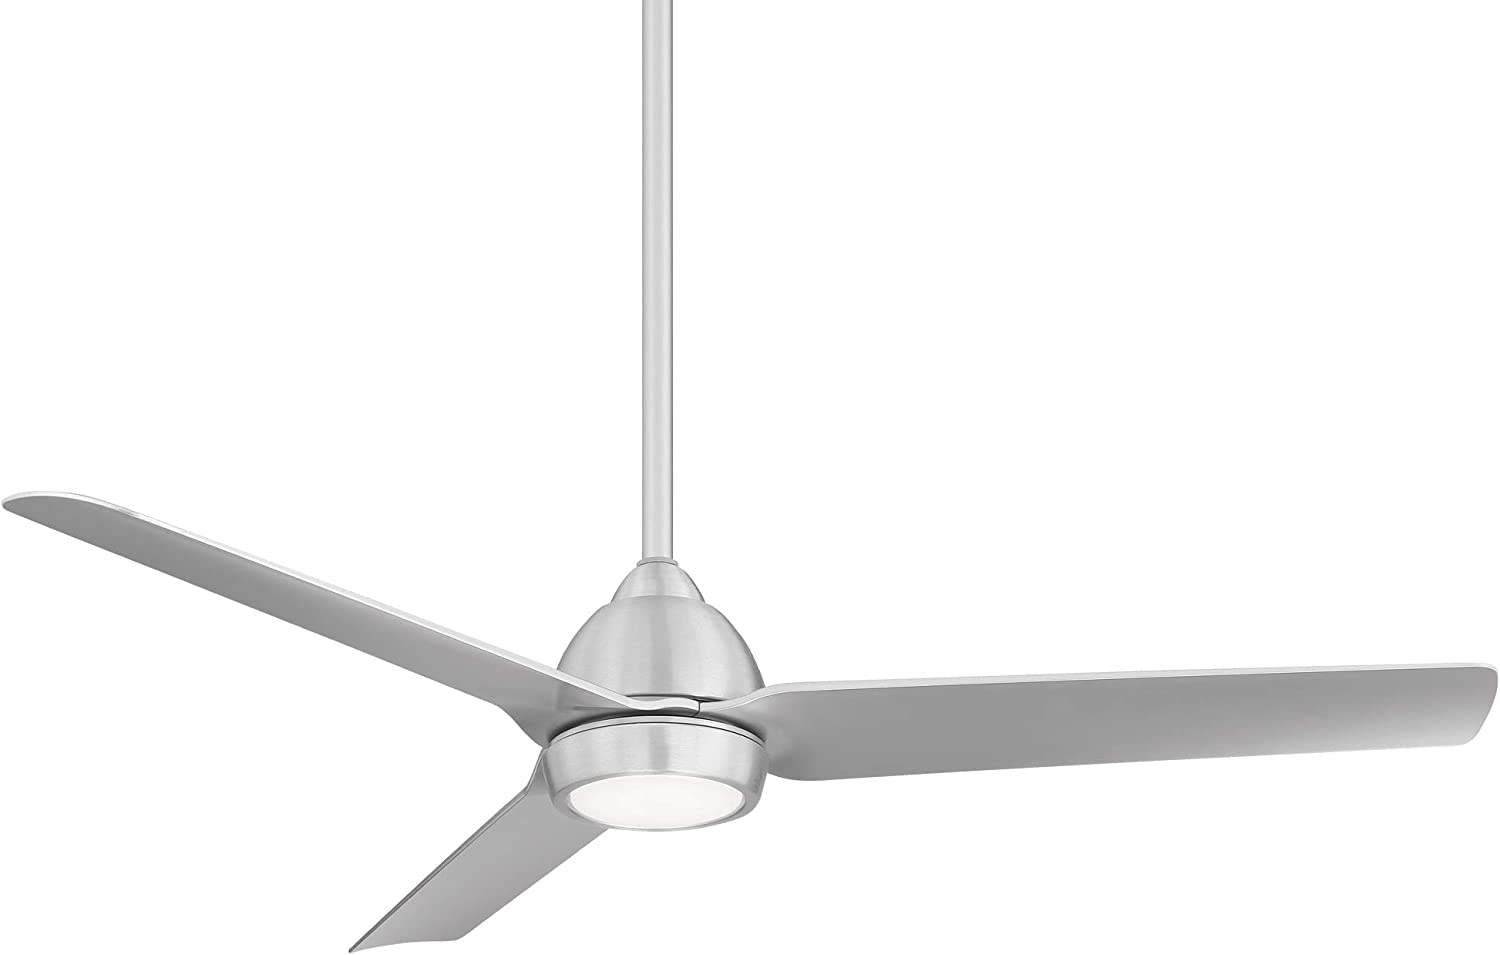 Mocha Indoor/Outdoor 3-Blade Smart Compatible Ceiling Fan 54in Brushed Aluminum with 3000K LED Light Kit and Remote Control with Wall Cradle. Works with iOS/Android, Alexa, and Google Assistant.